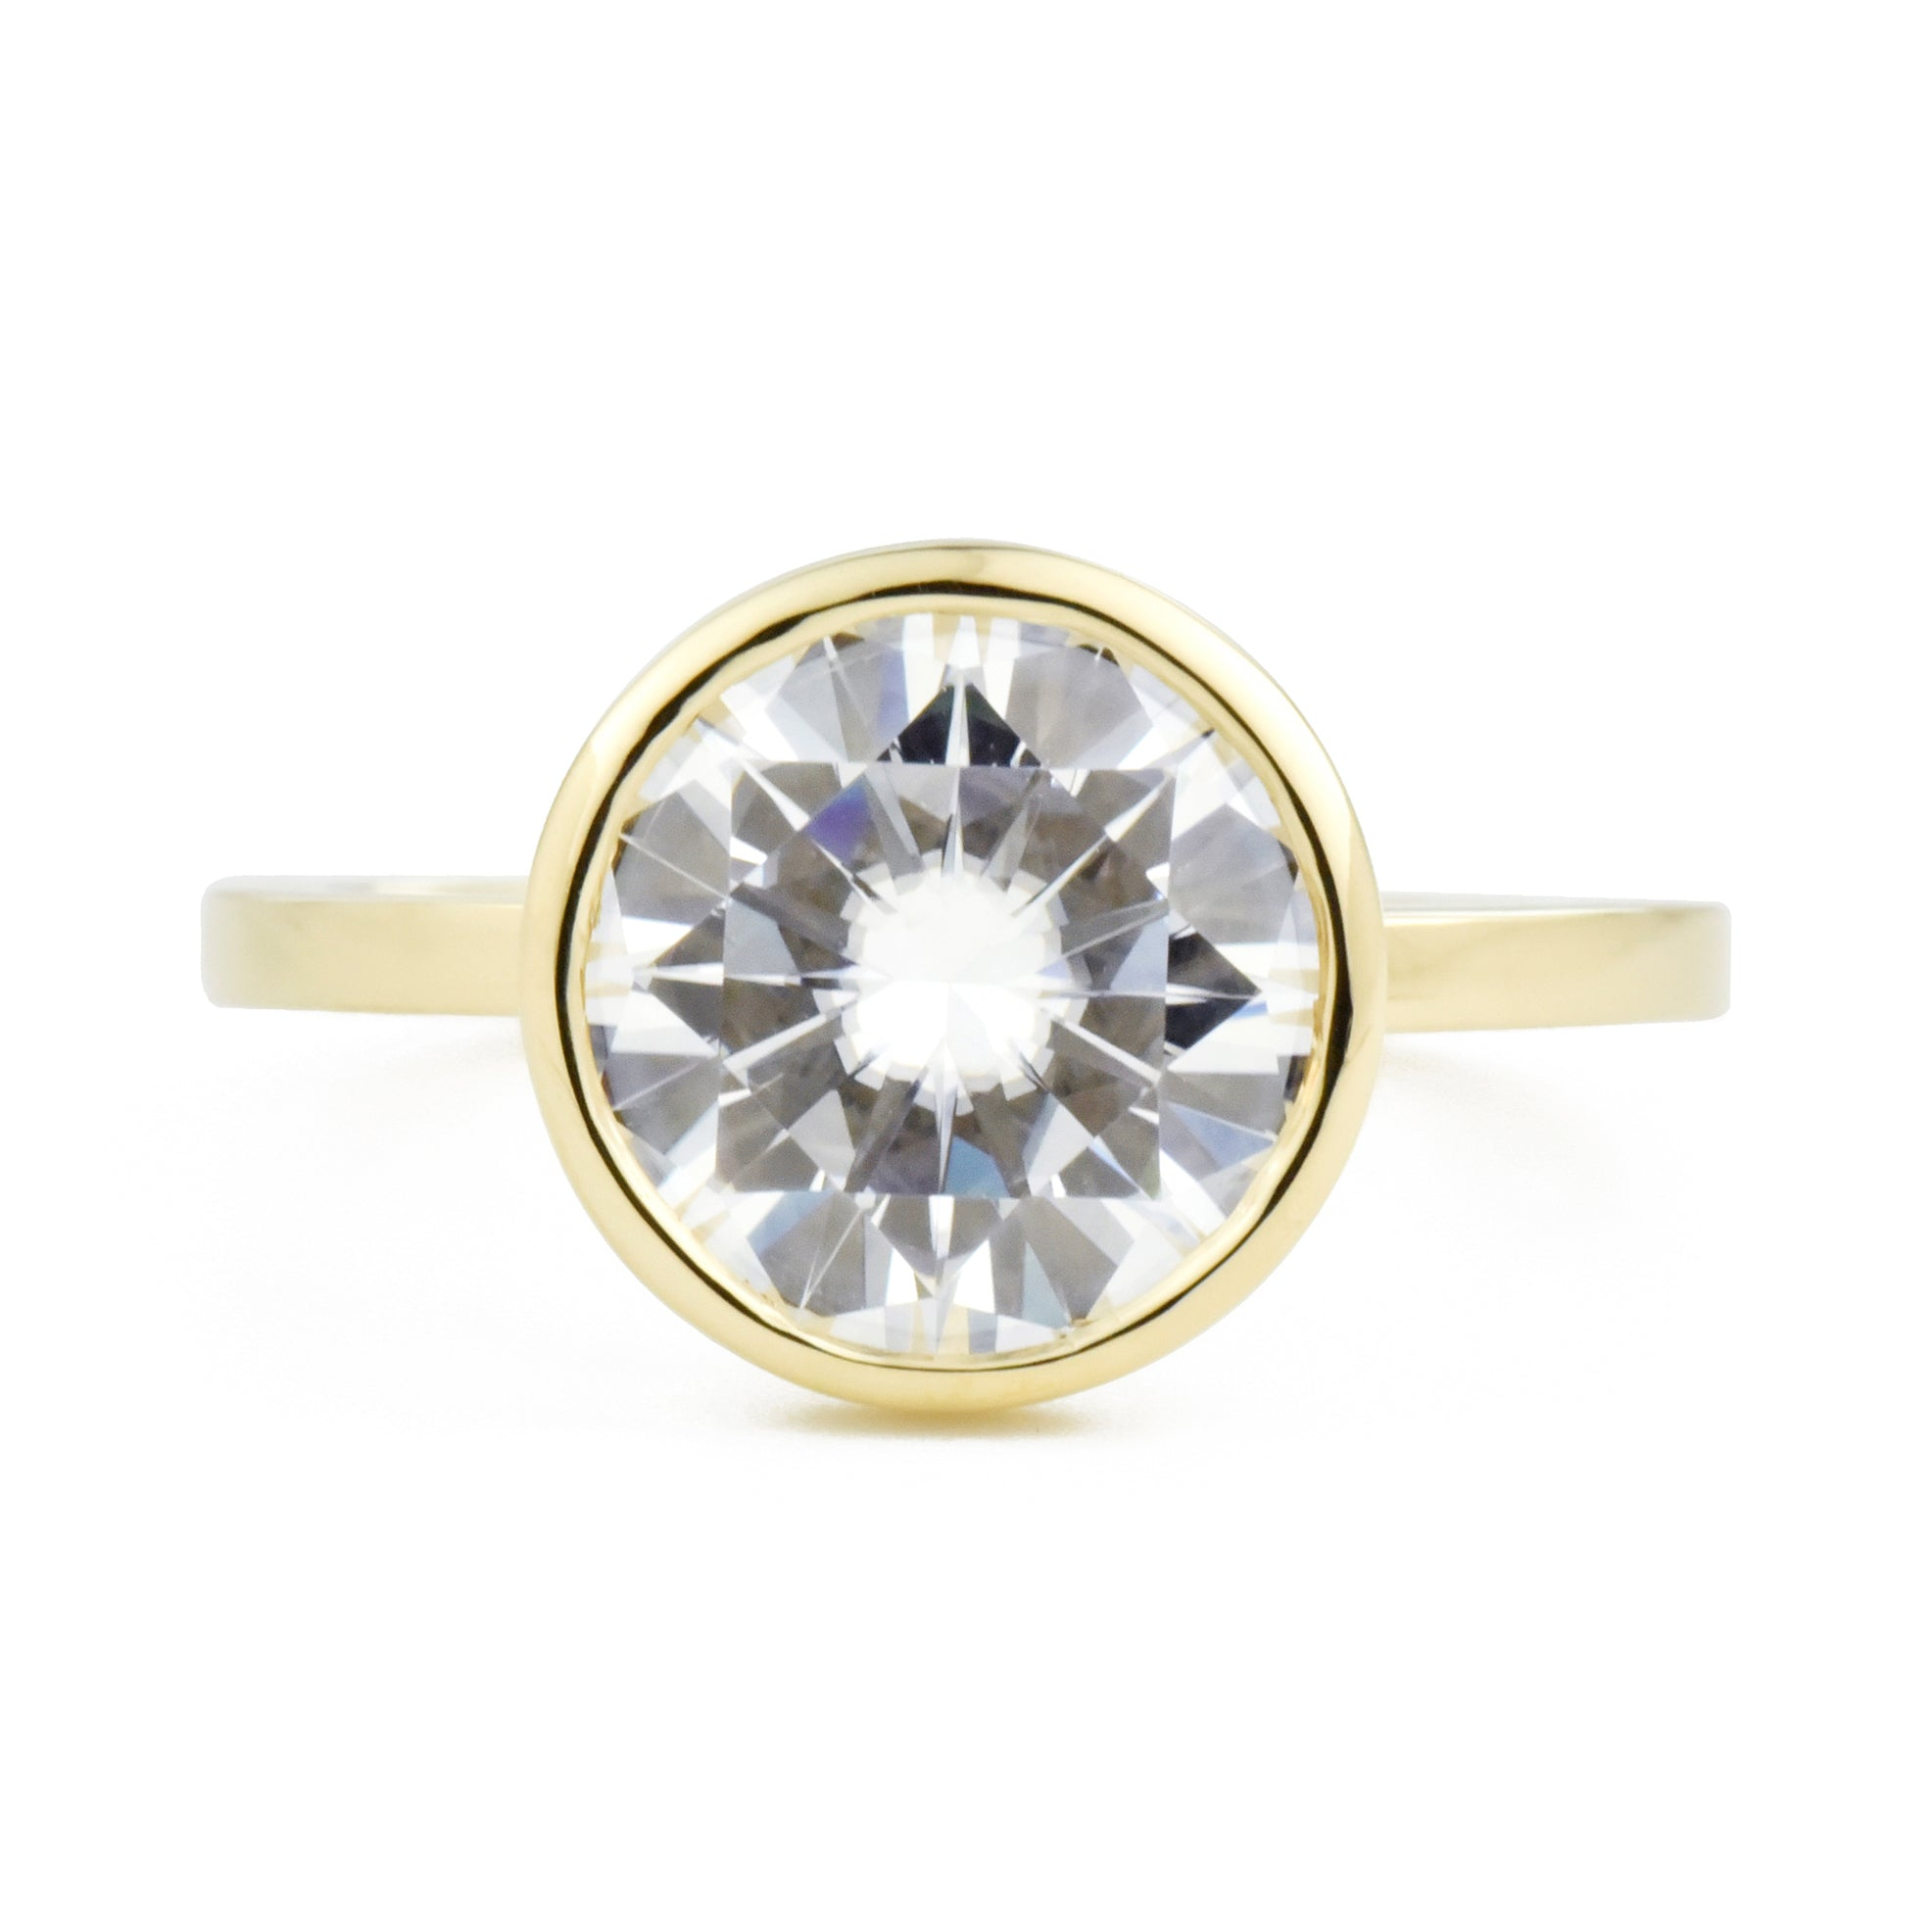 Aura Round Bezel 2.7ct Moissanite Engagement Ring in yellow gold